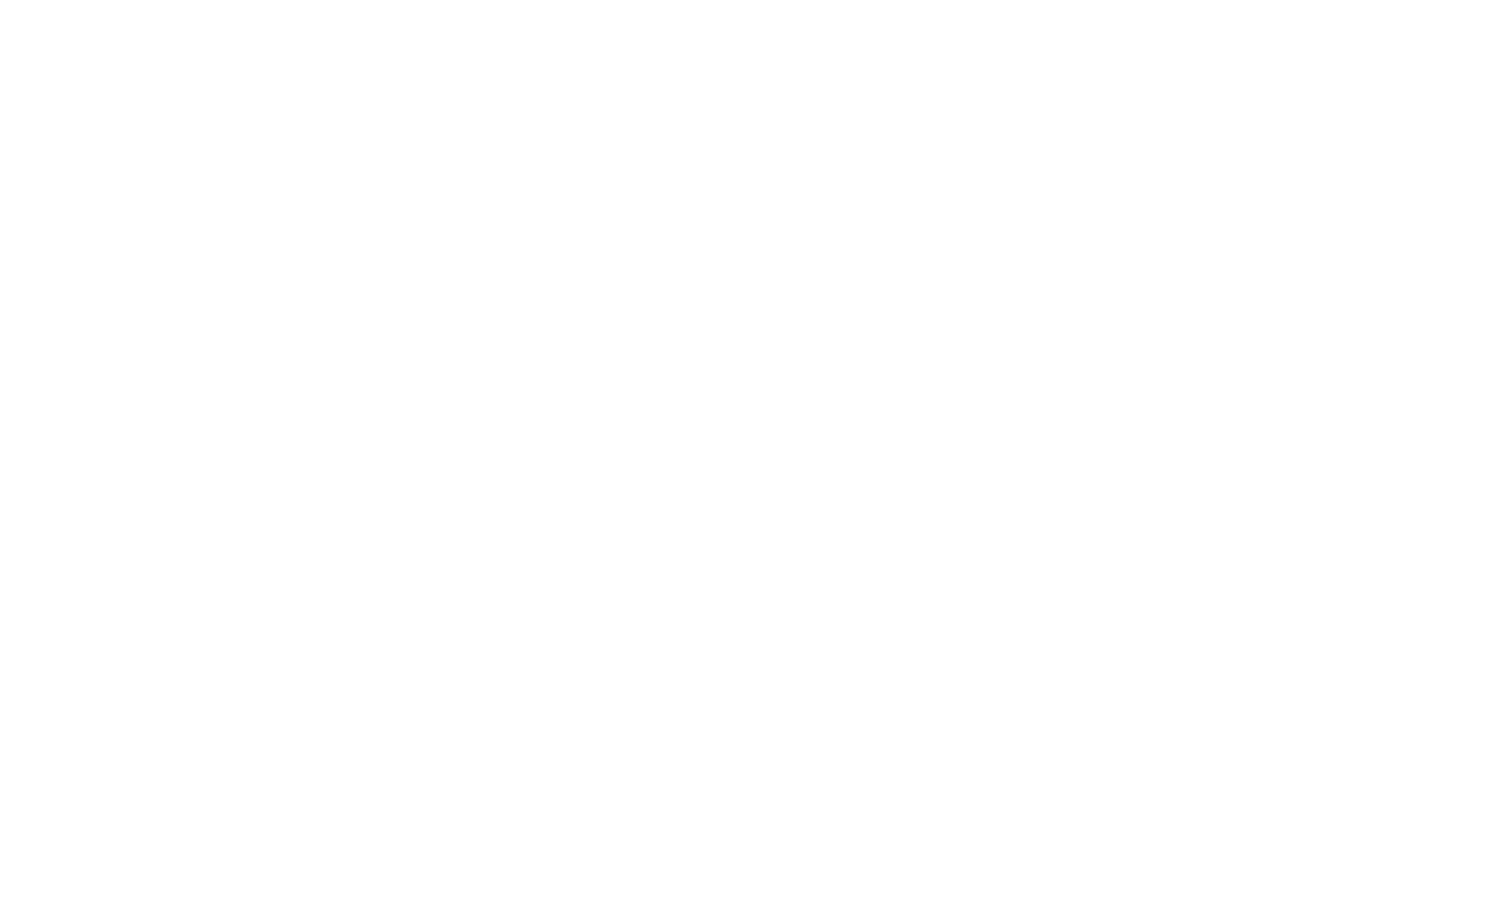 The New Respects